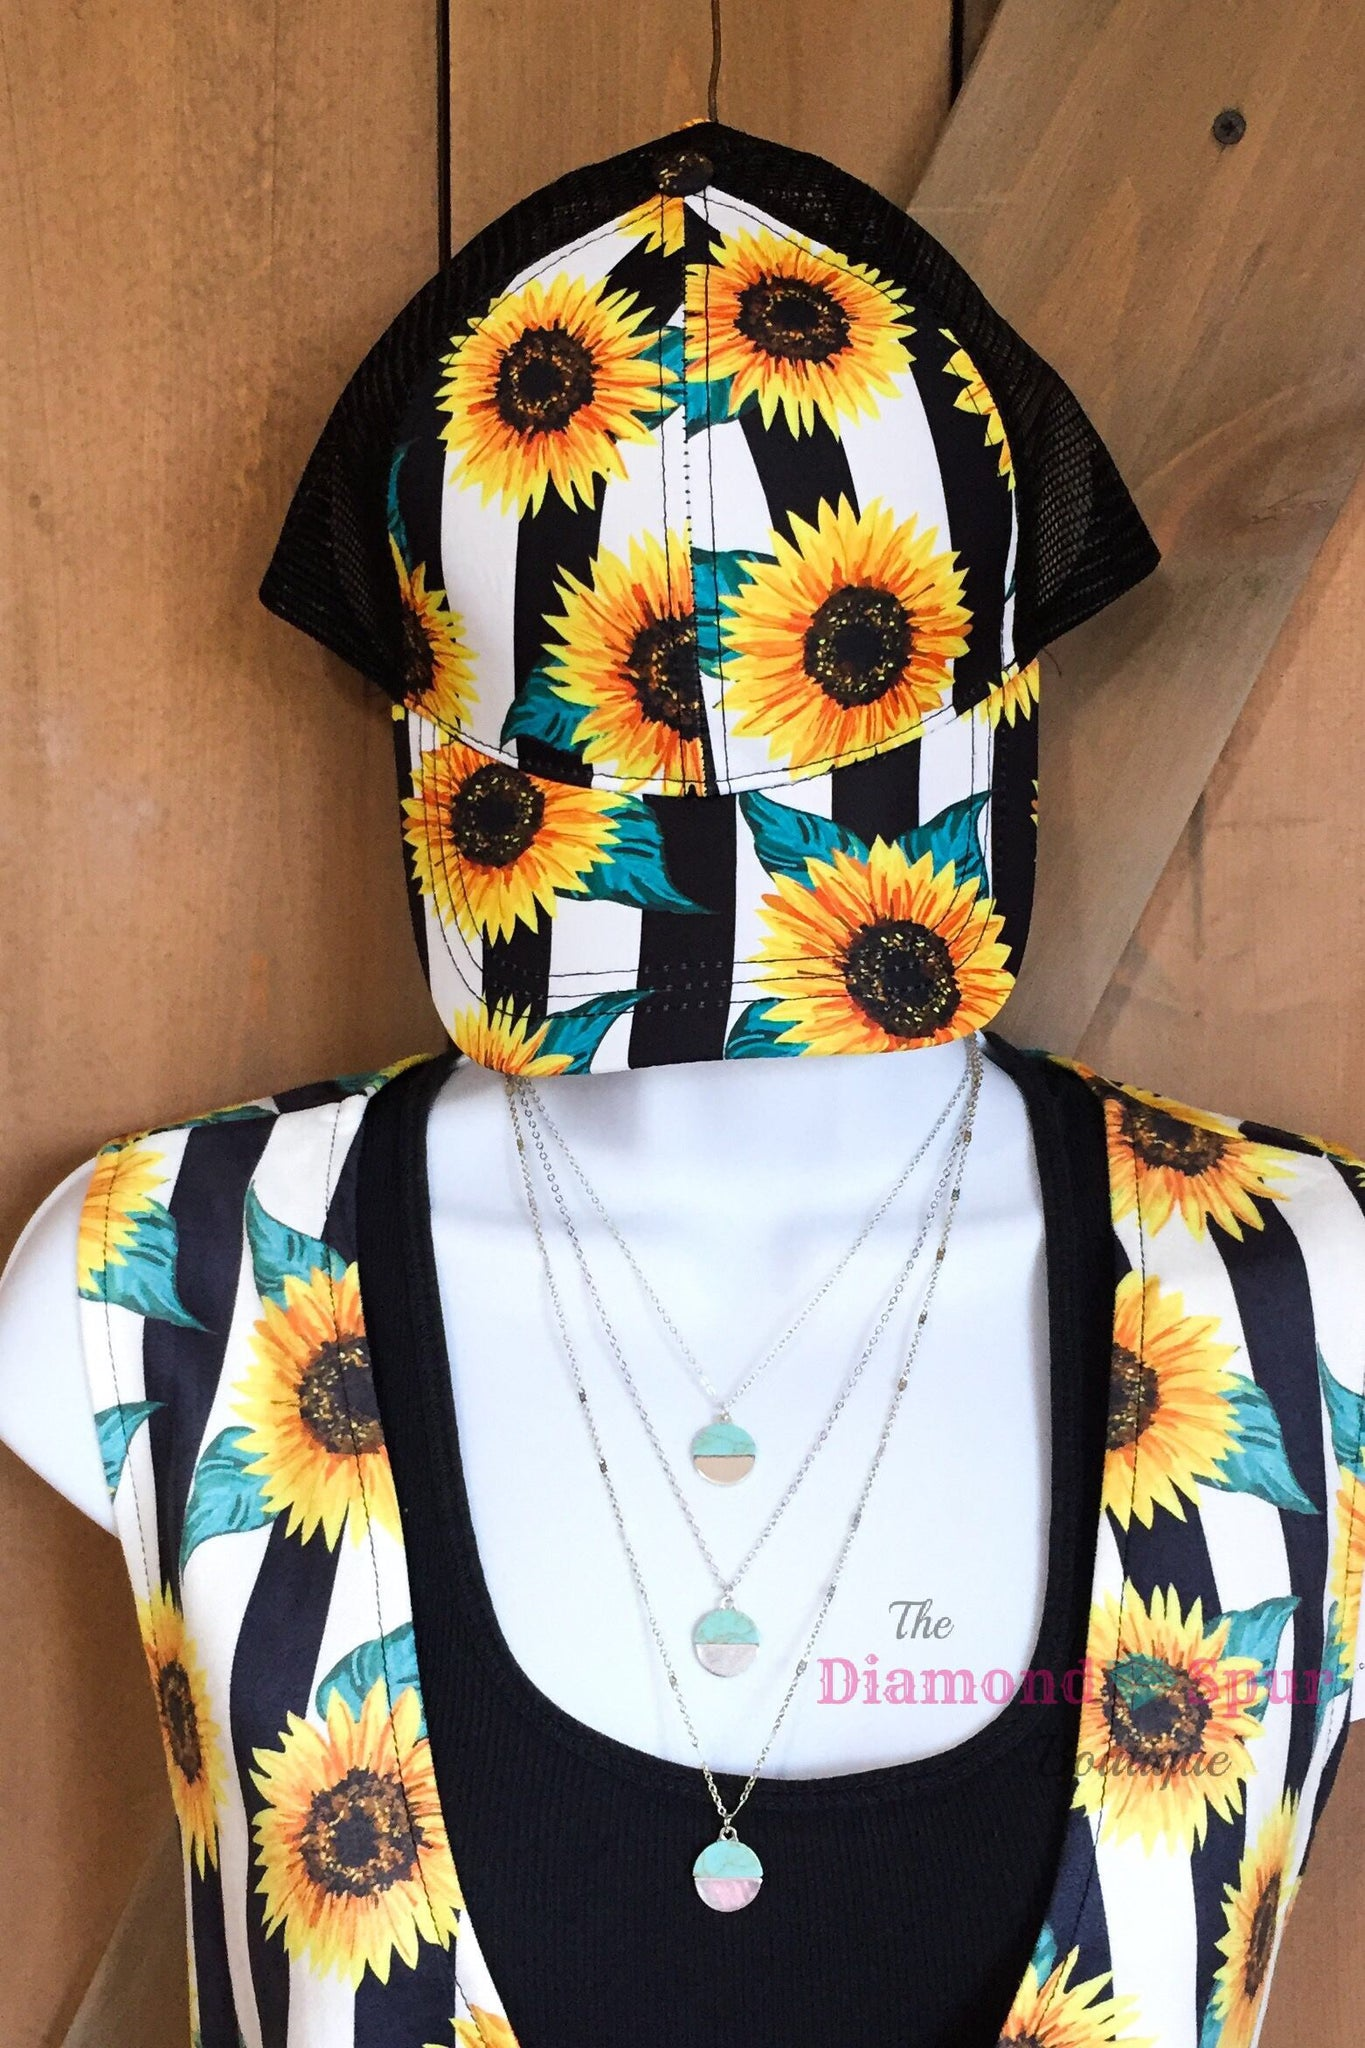 Crazy Train Sunflower Ball Cap - The Diamond Spur Boutique